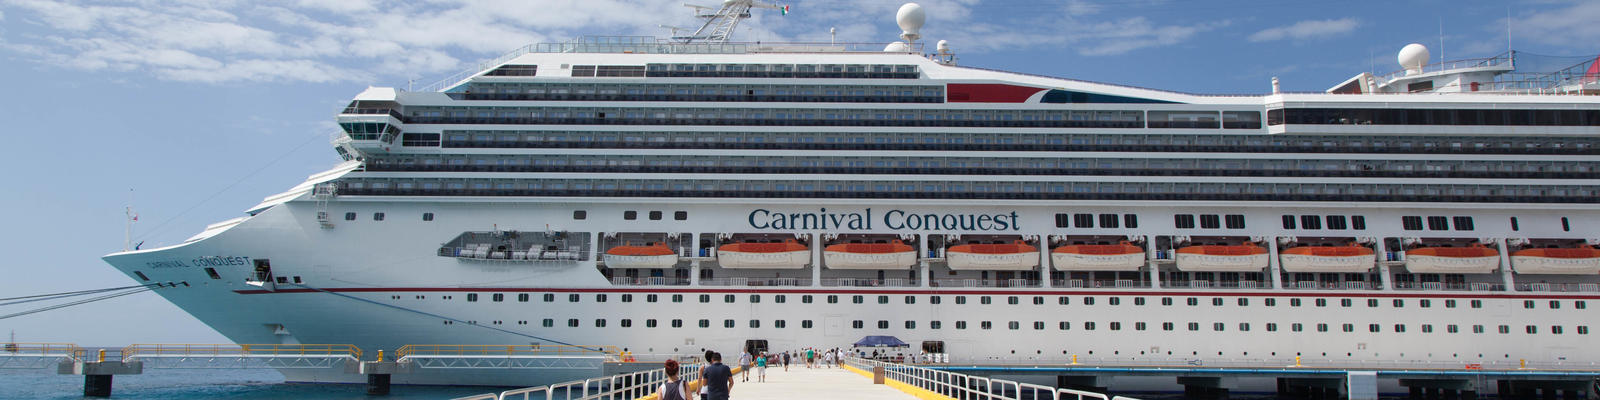 Carnival Conquest docked in Cozumel (Photo: Cruise Critic)